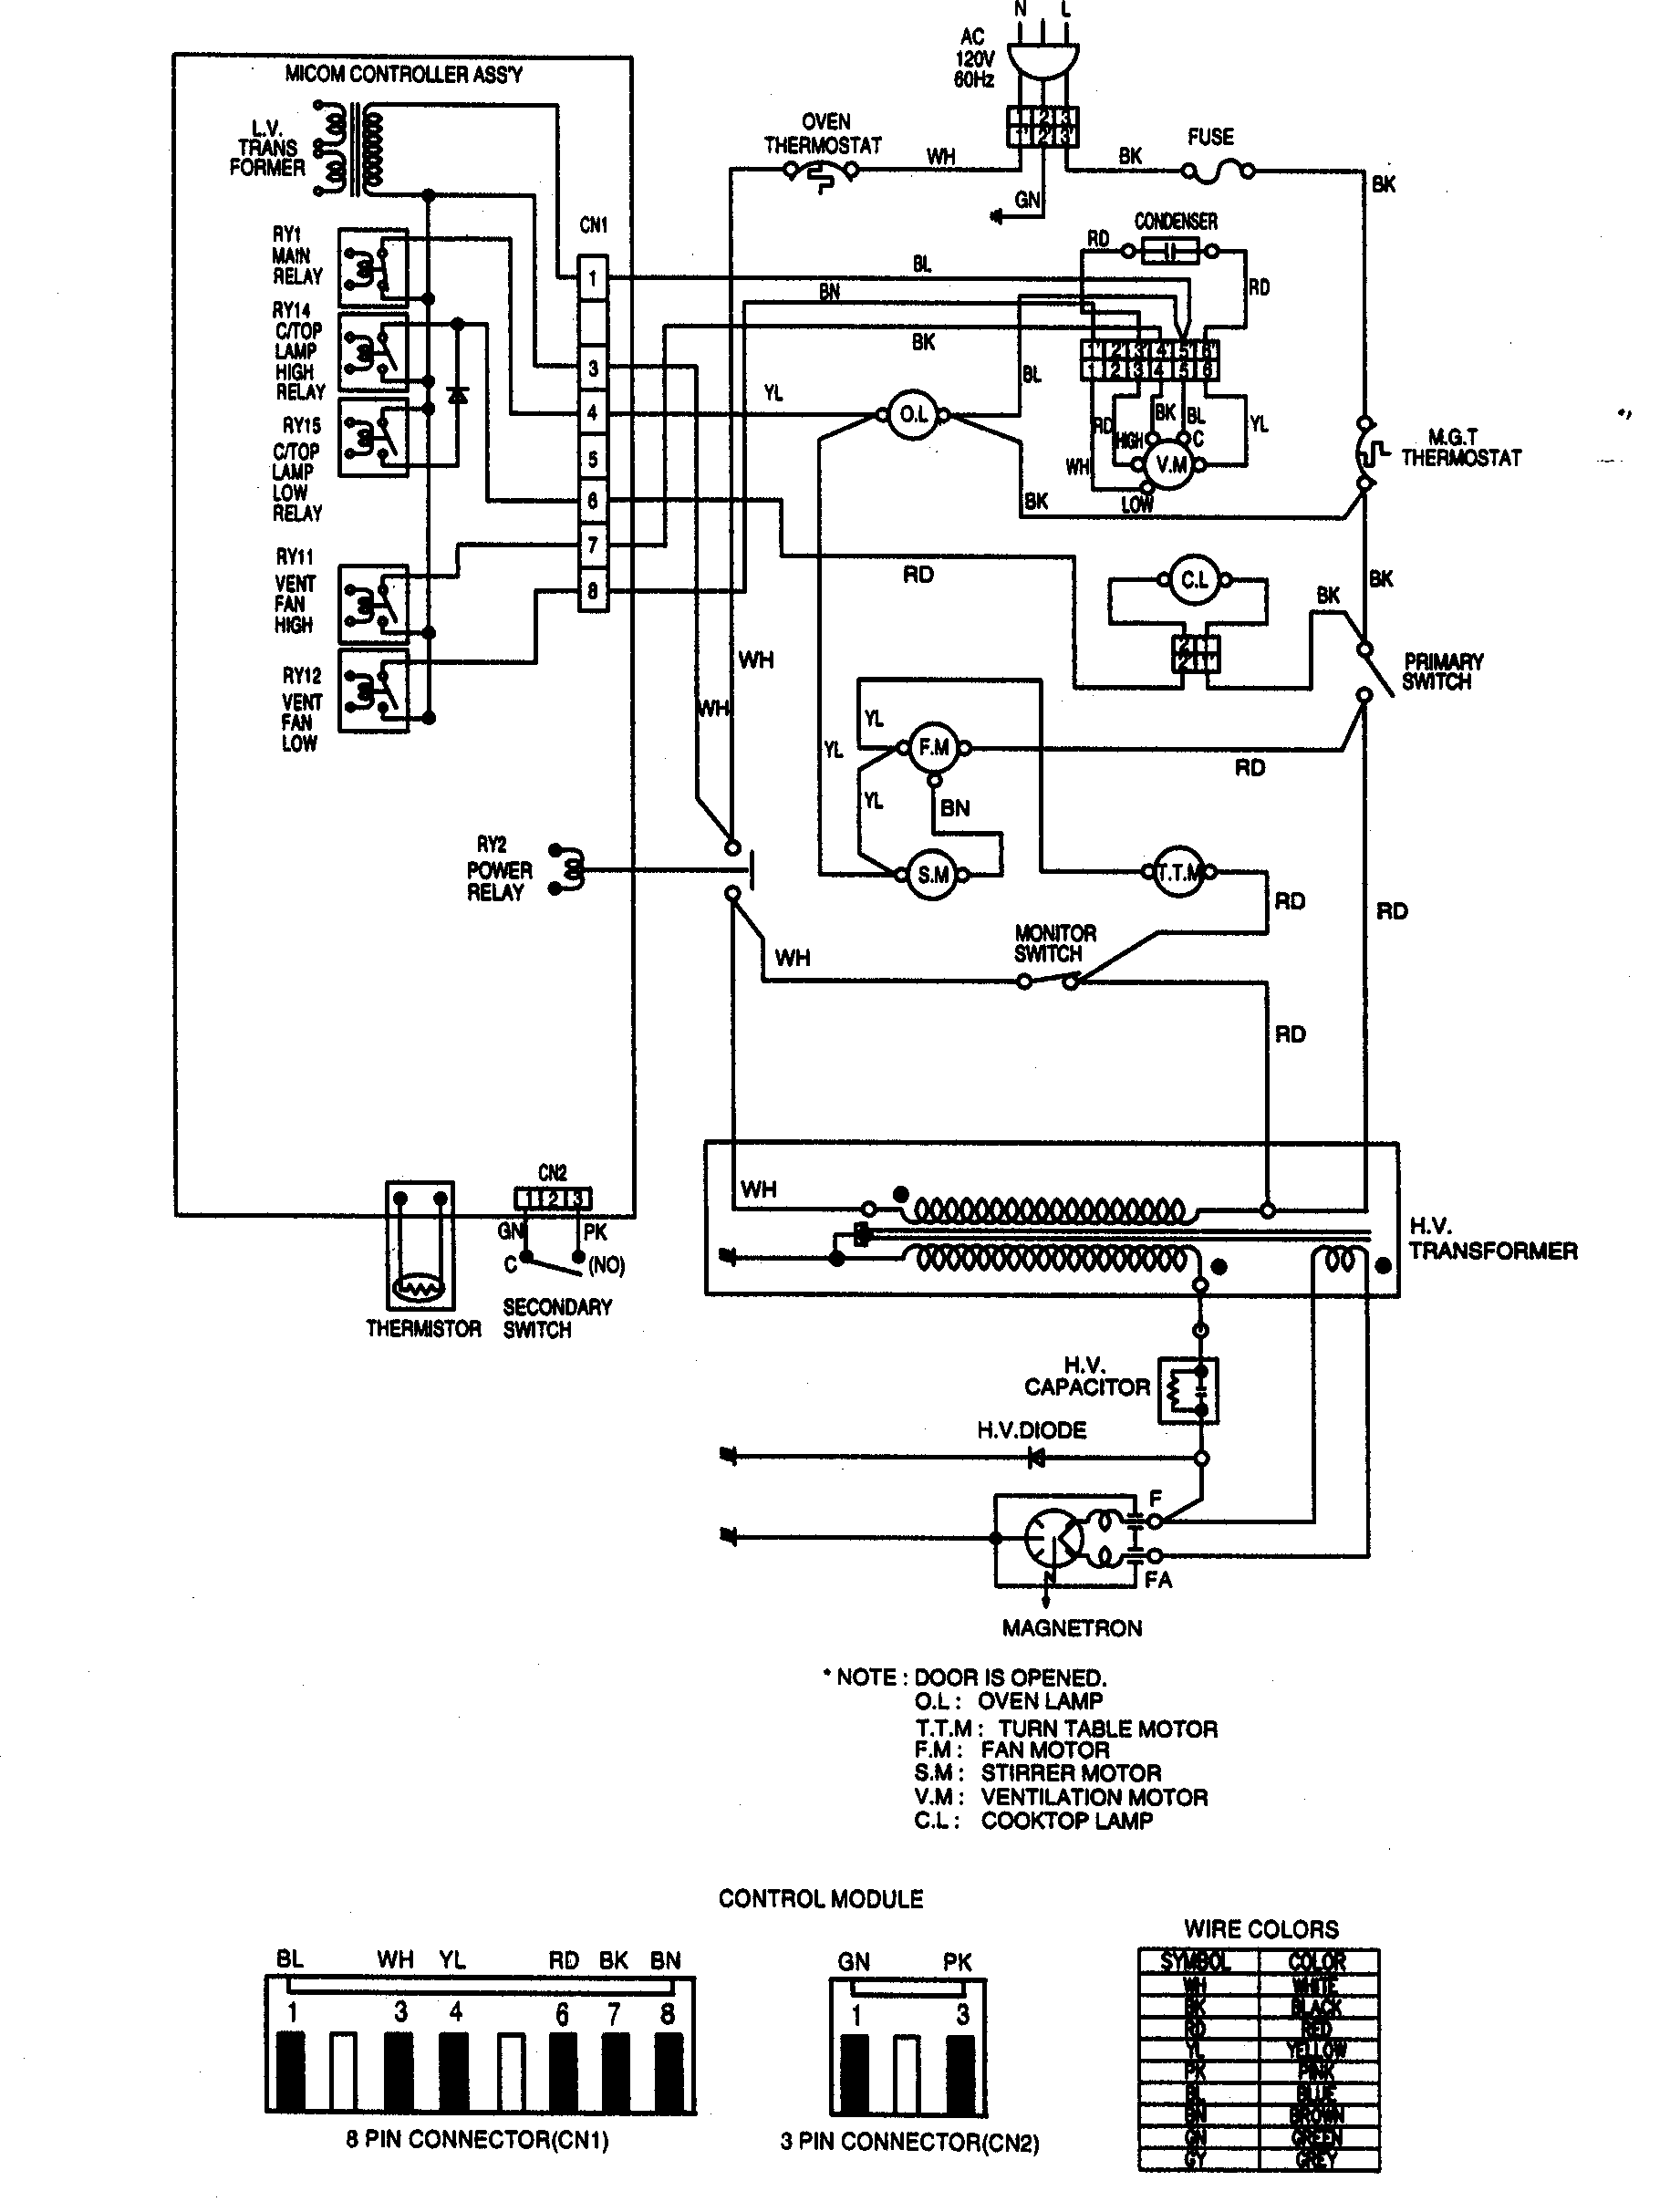 KENMORE MICROWAVE WIRING DIAGRAM - Auto Electrical Wiring ... on